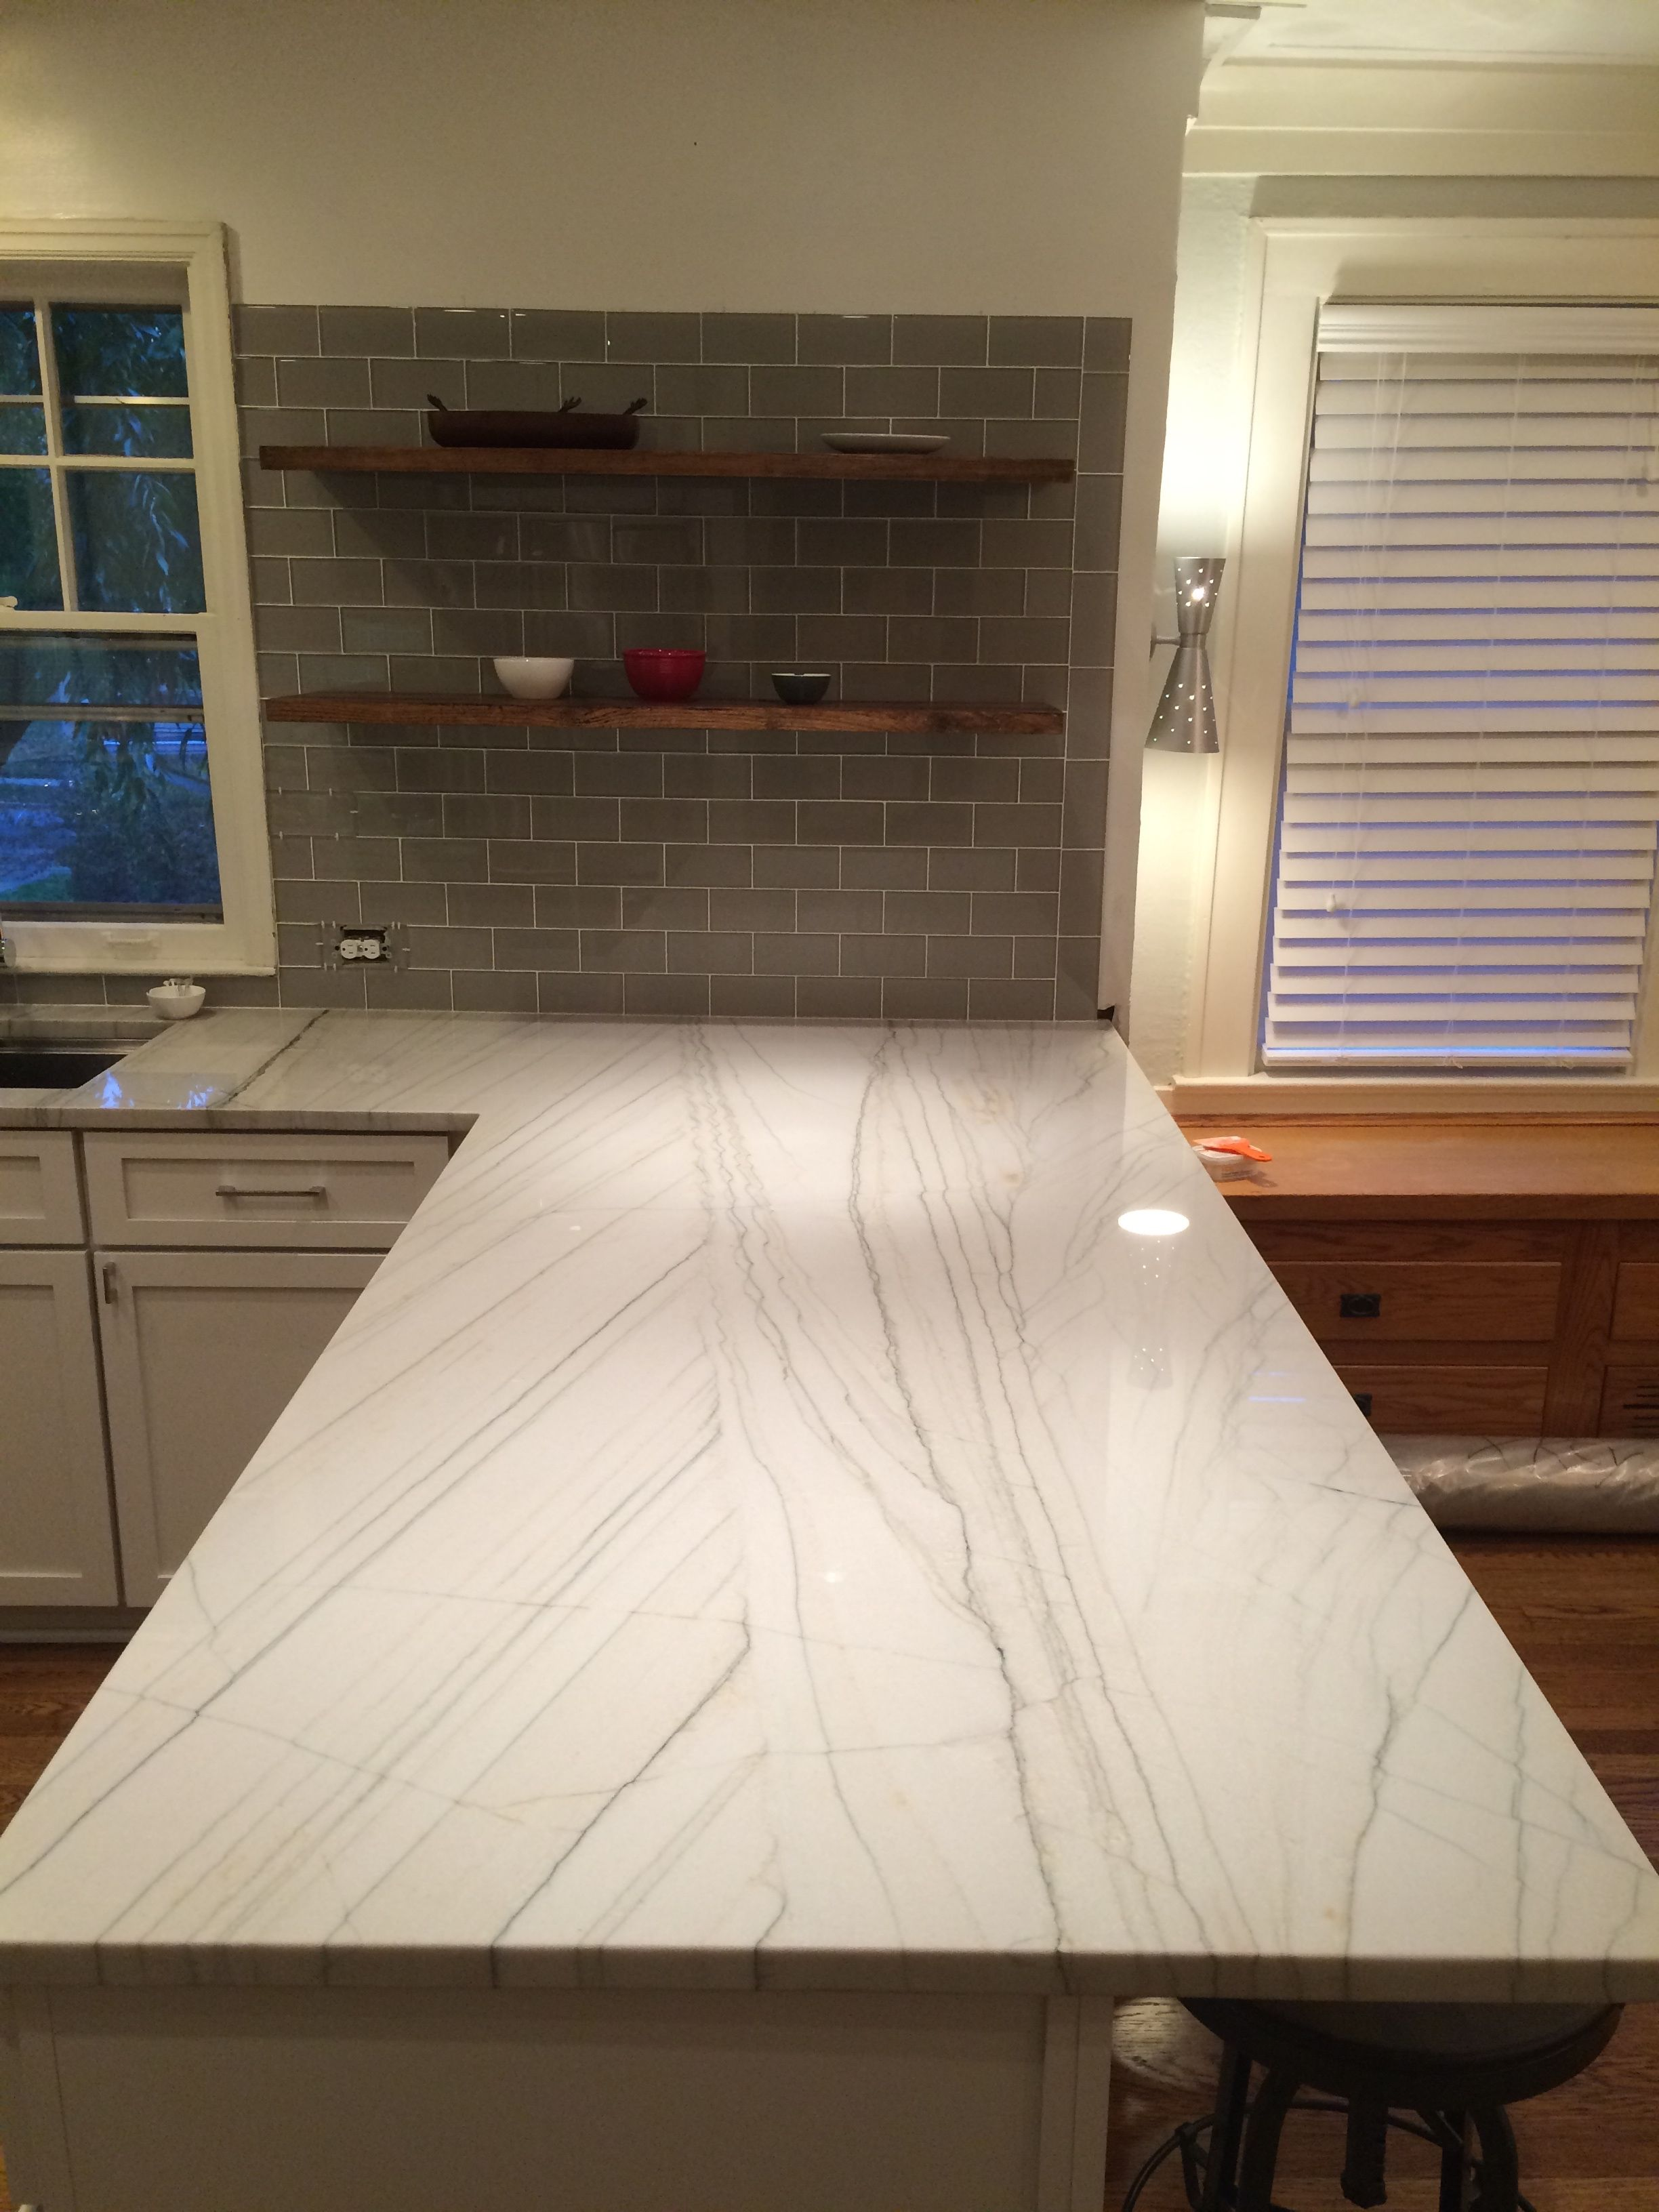 My Counter Tops. White Macaubas Quartzite Is A Naturally Occurring (aka Not Man  Made At All) Stone That Closely Resembles Marble But Has The Durability Of  ...